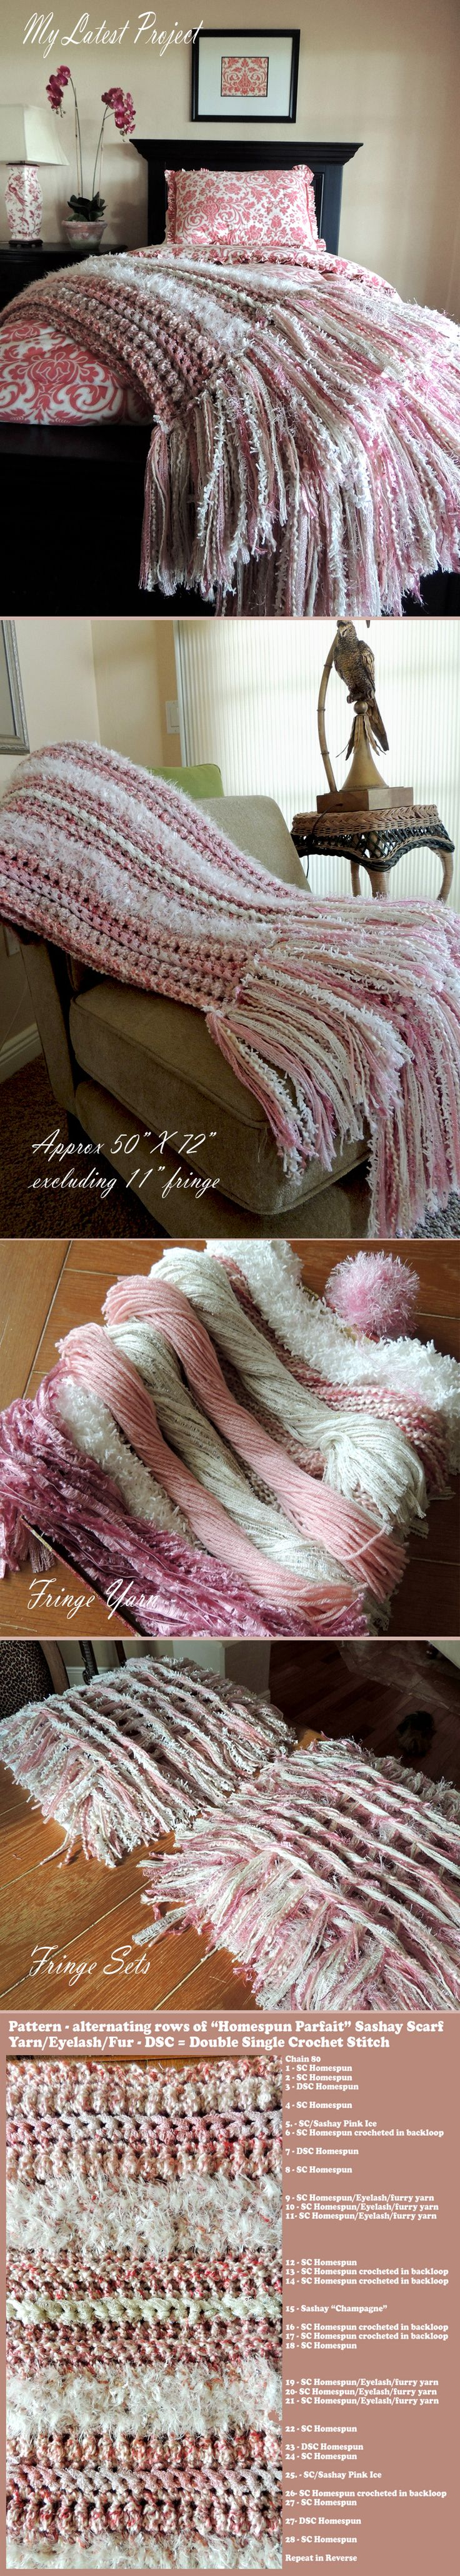 "My latest Crochet Addiction Creation. I JUST LOVE making these chunky, cozy and very simple afghans. Done in pinks and whites I used Homespun Parfait for the main color, a combo of 1 strand each of short eyelash and a furry yarn for the white stripes and a few rows of Sashay Scarf yarn for the contrasting stripes. I added an 11"" fringe made up of about 8 different yarns (130 total fringe sets). Finished size-50"" X 94"" with fringe, Now onto the next one!"